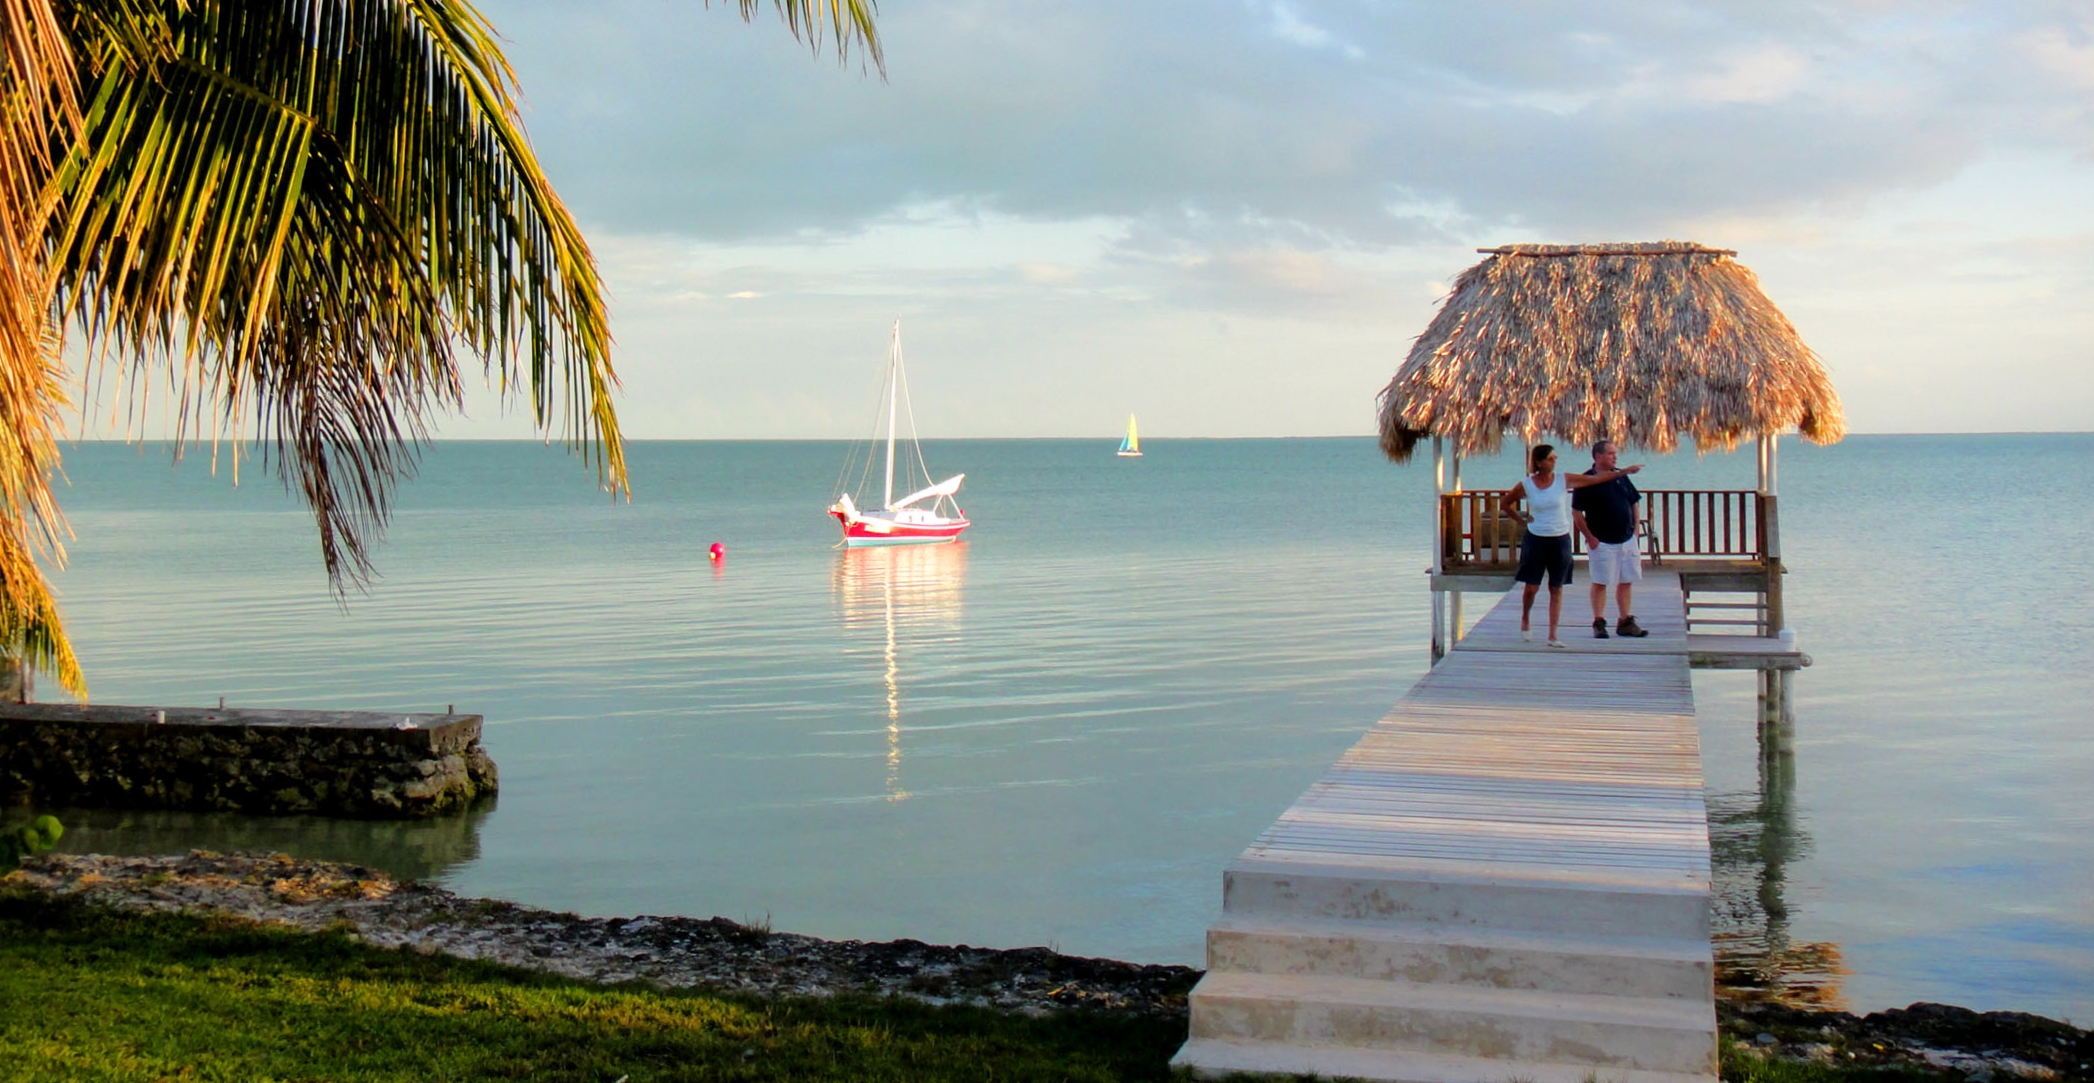 Relaxing on the pier - Consejo Shores, Corozal, Belize